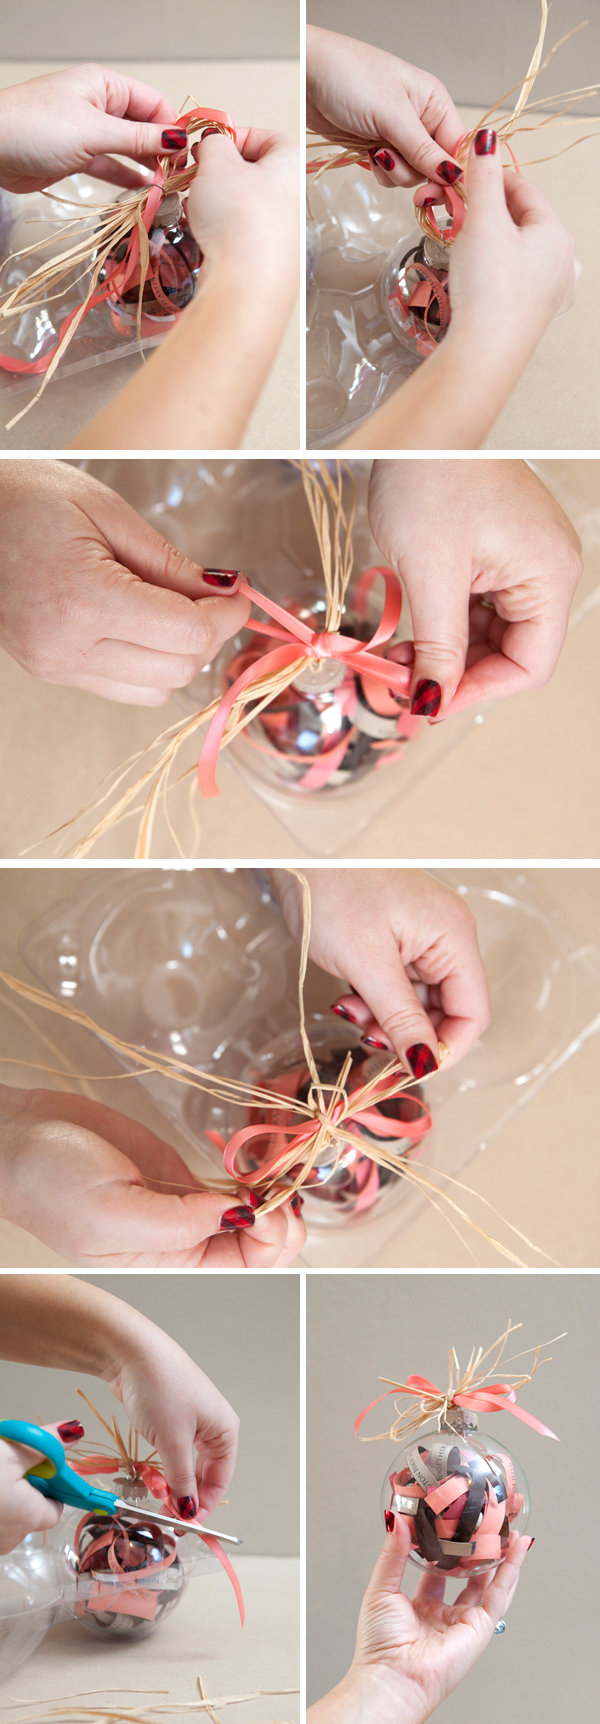 DIY We Love Wedding Invitation Ornament